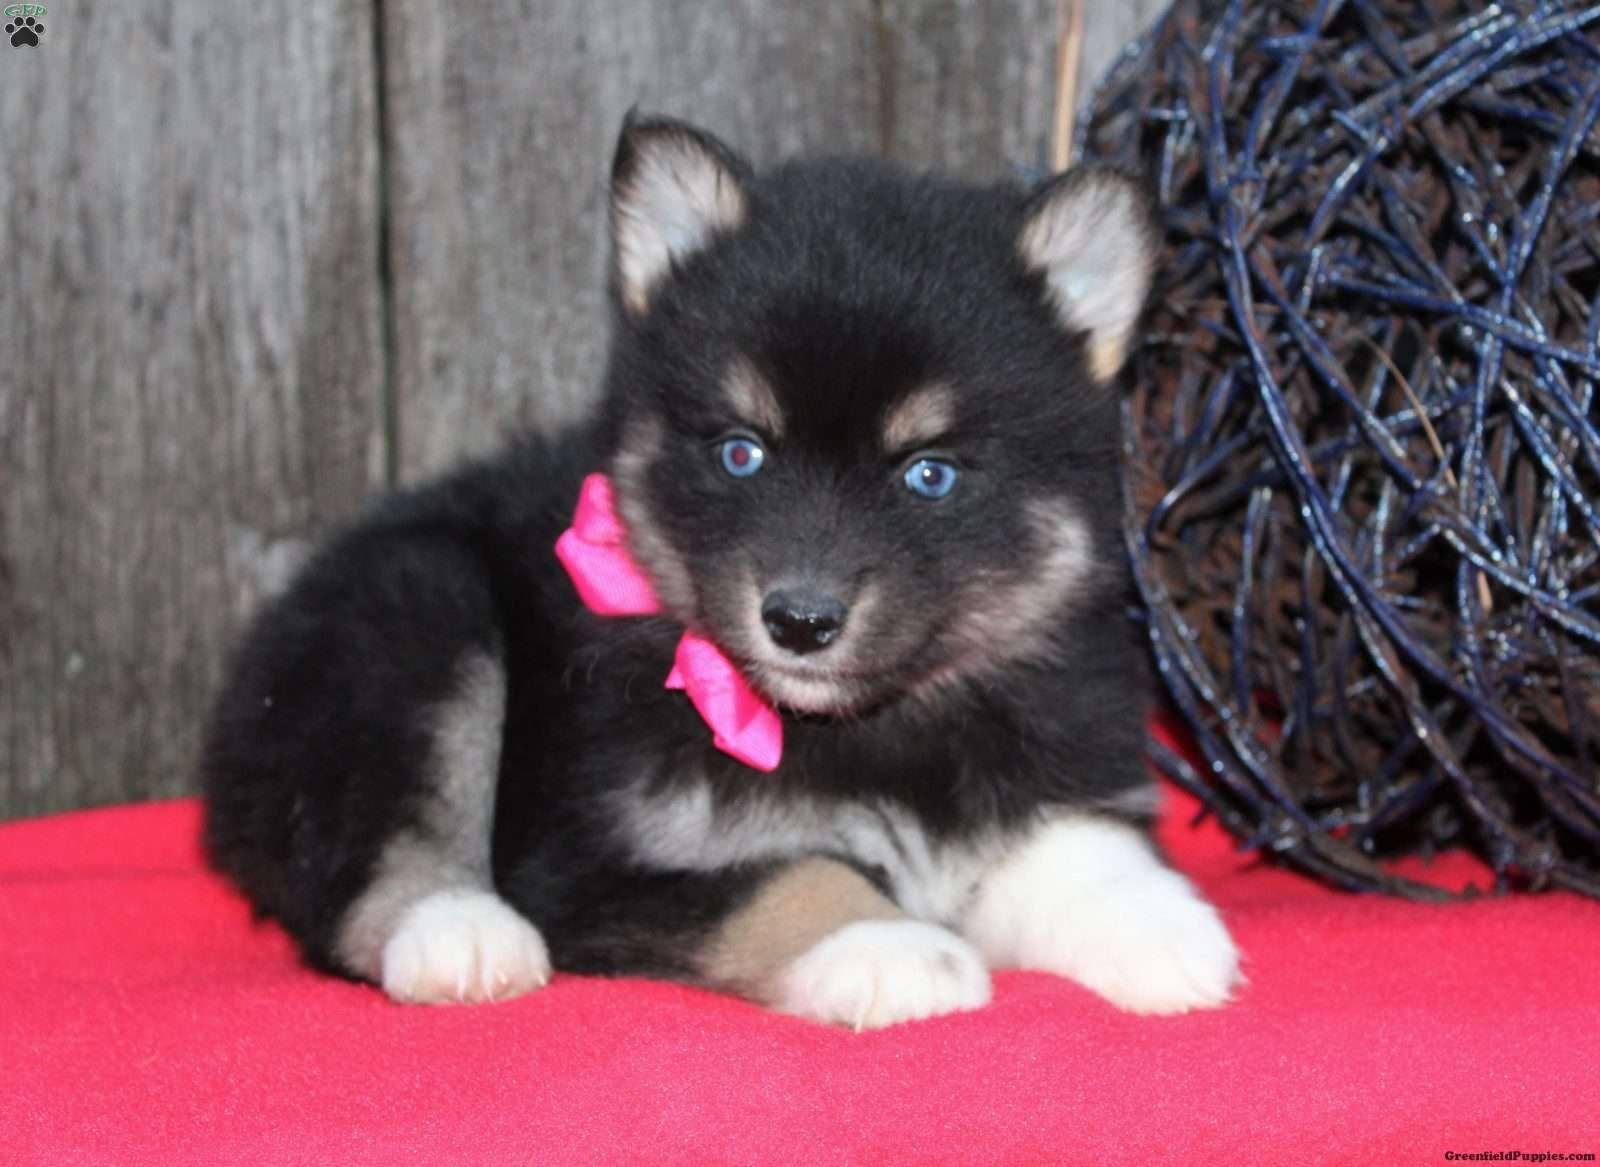 Wolf Hybrid Puppies For Sale In Ohio - Lily pomsky puppy 1 95